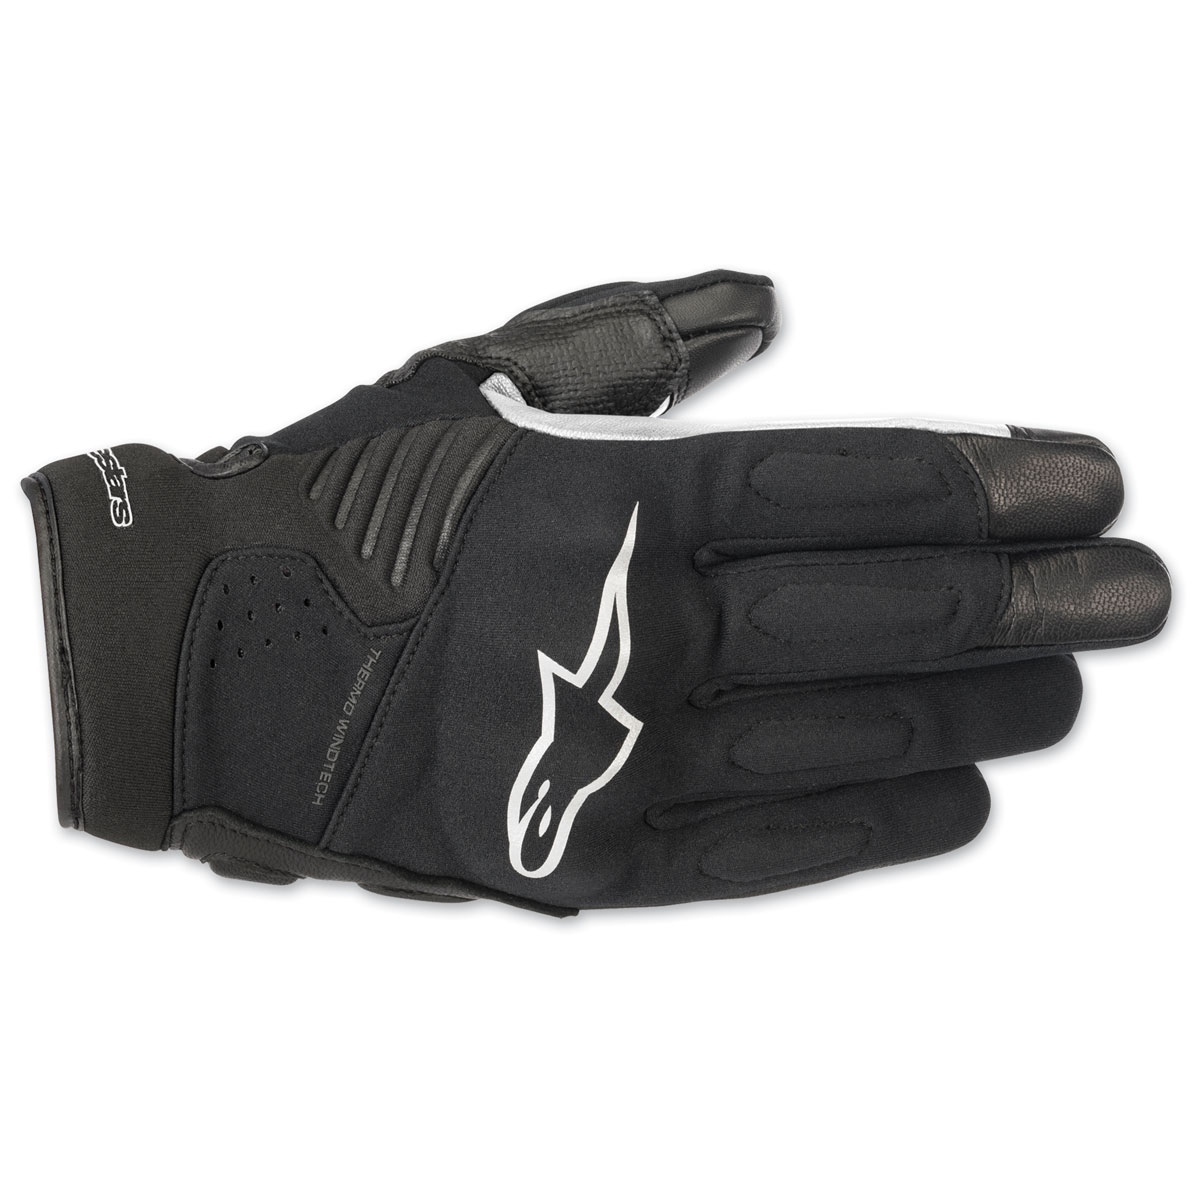 Alpinestars Men's Faster Black Gloves